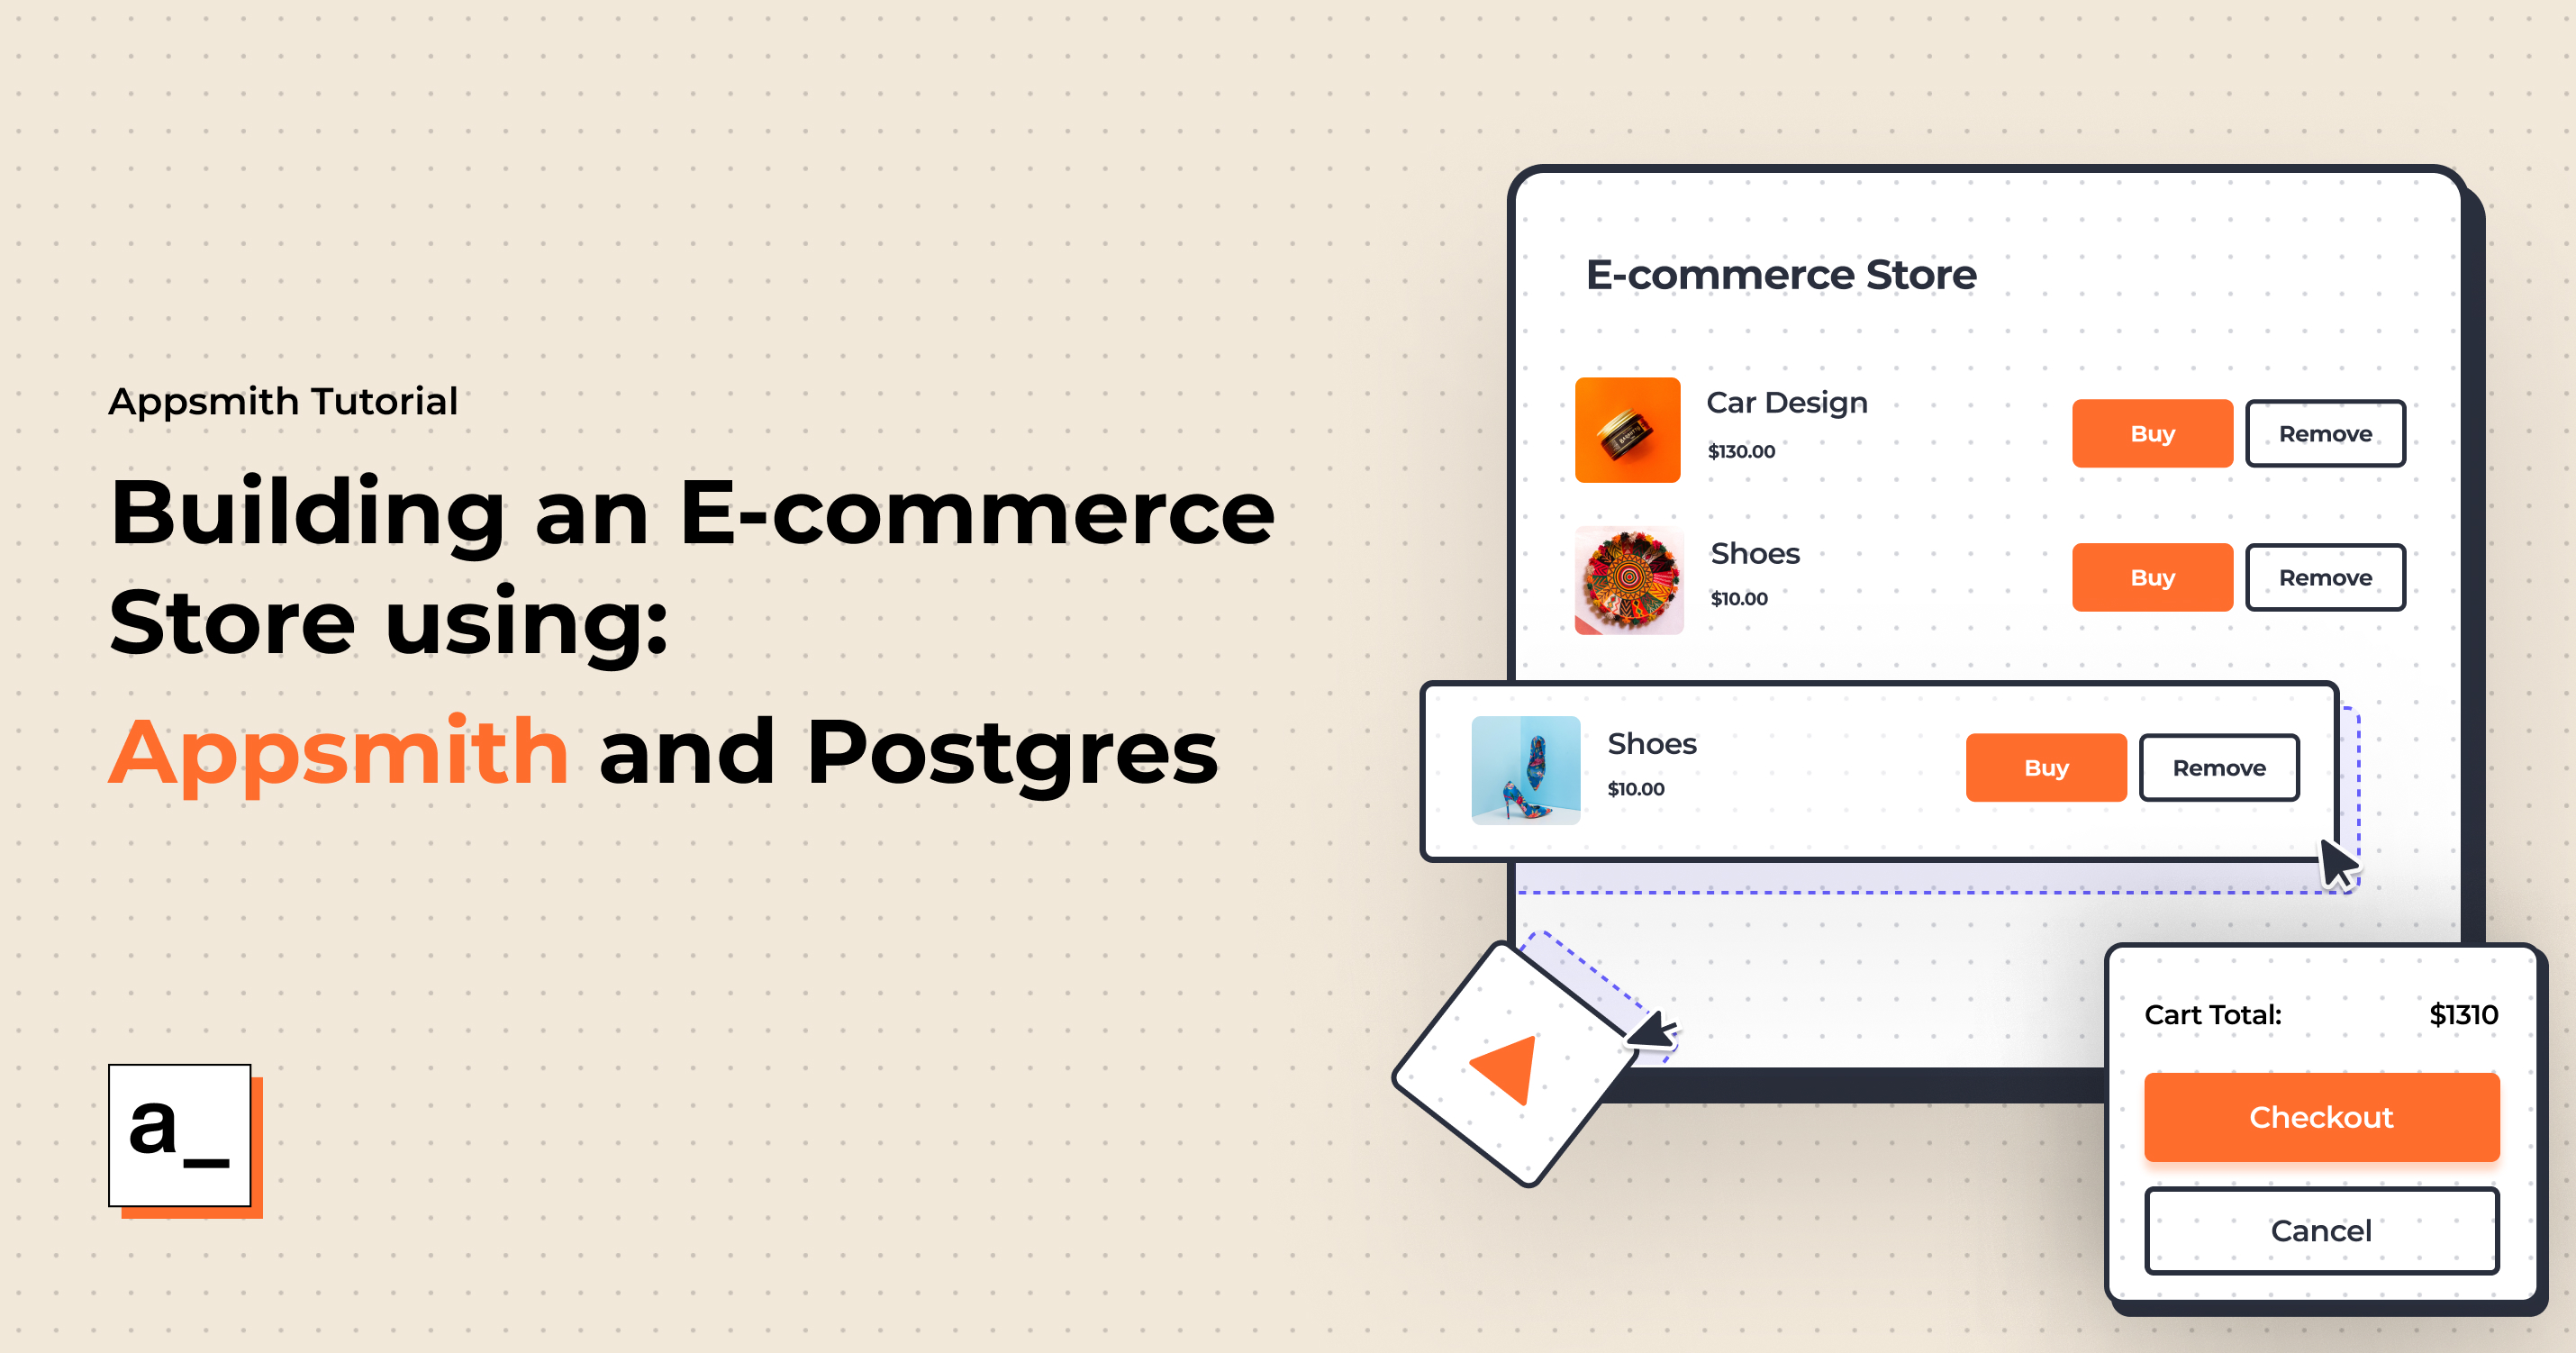 Building an E-commerce Store using Appsmith and Postgres